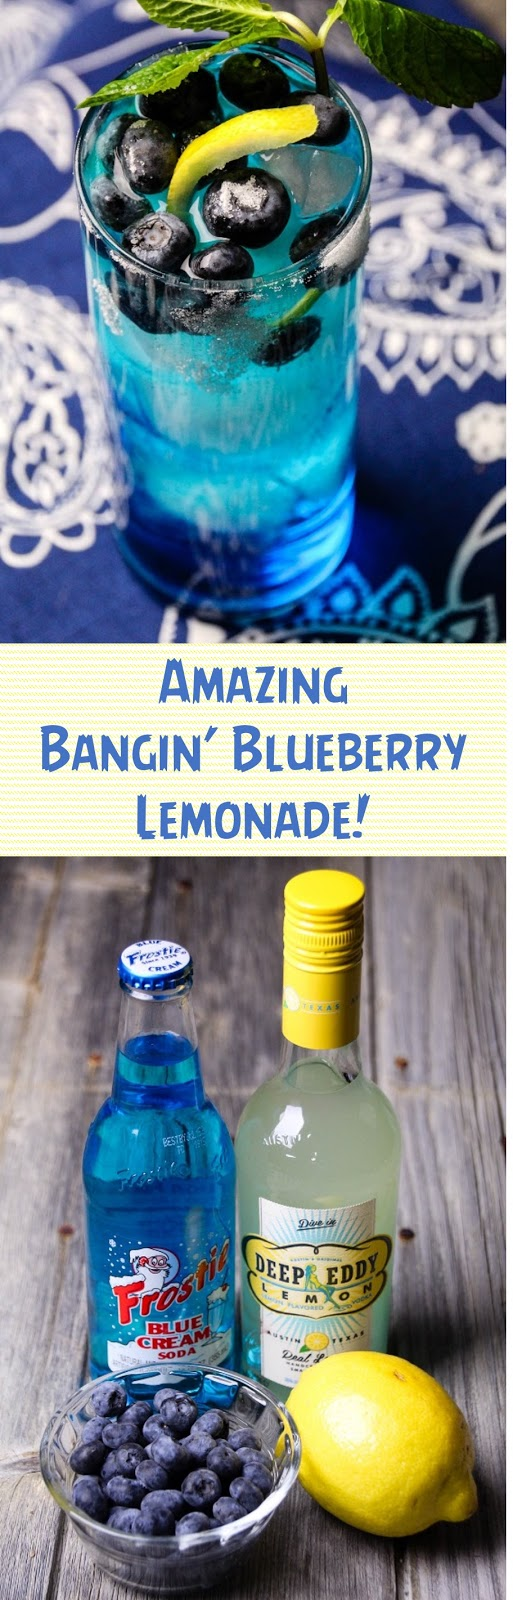 Amazing Bangin' Blueberry Lemonade!